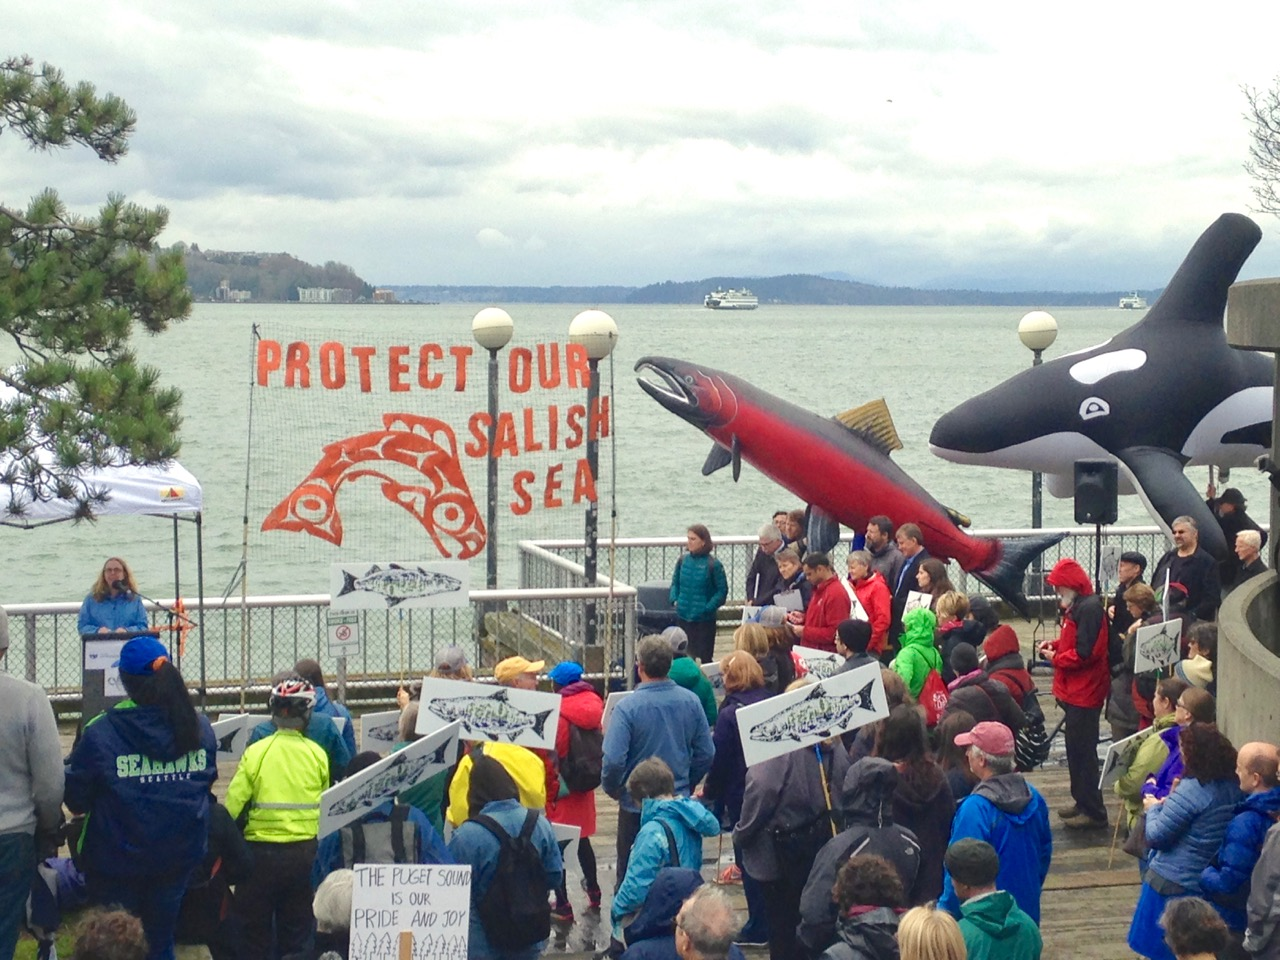 Learn how to make Giant Inflatable Puppets for Progressive causes like our Salmon and Orca from this Protect Our Salish Sea, Don't Defund the EPA Rally!